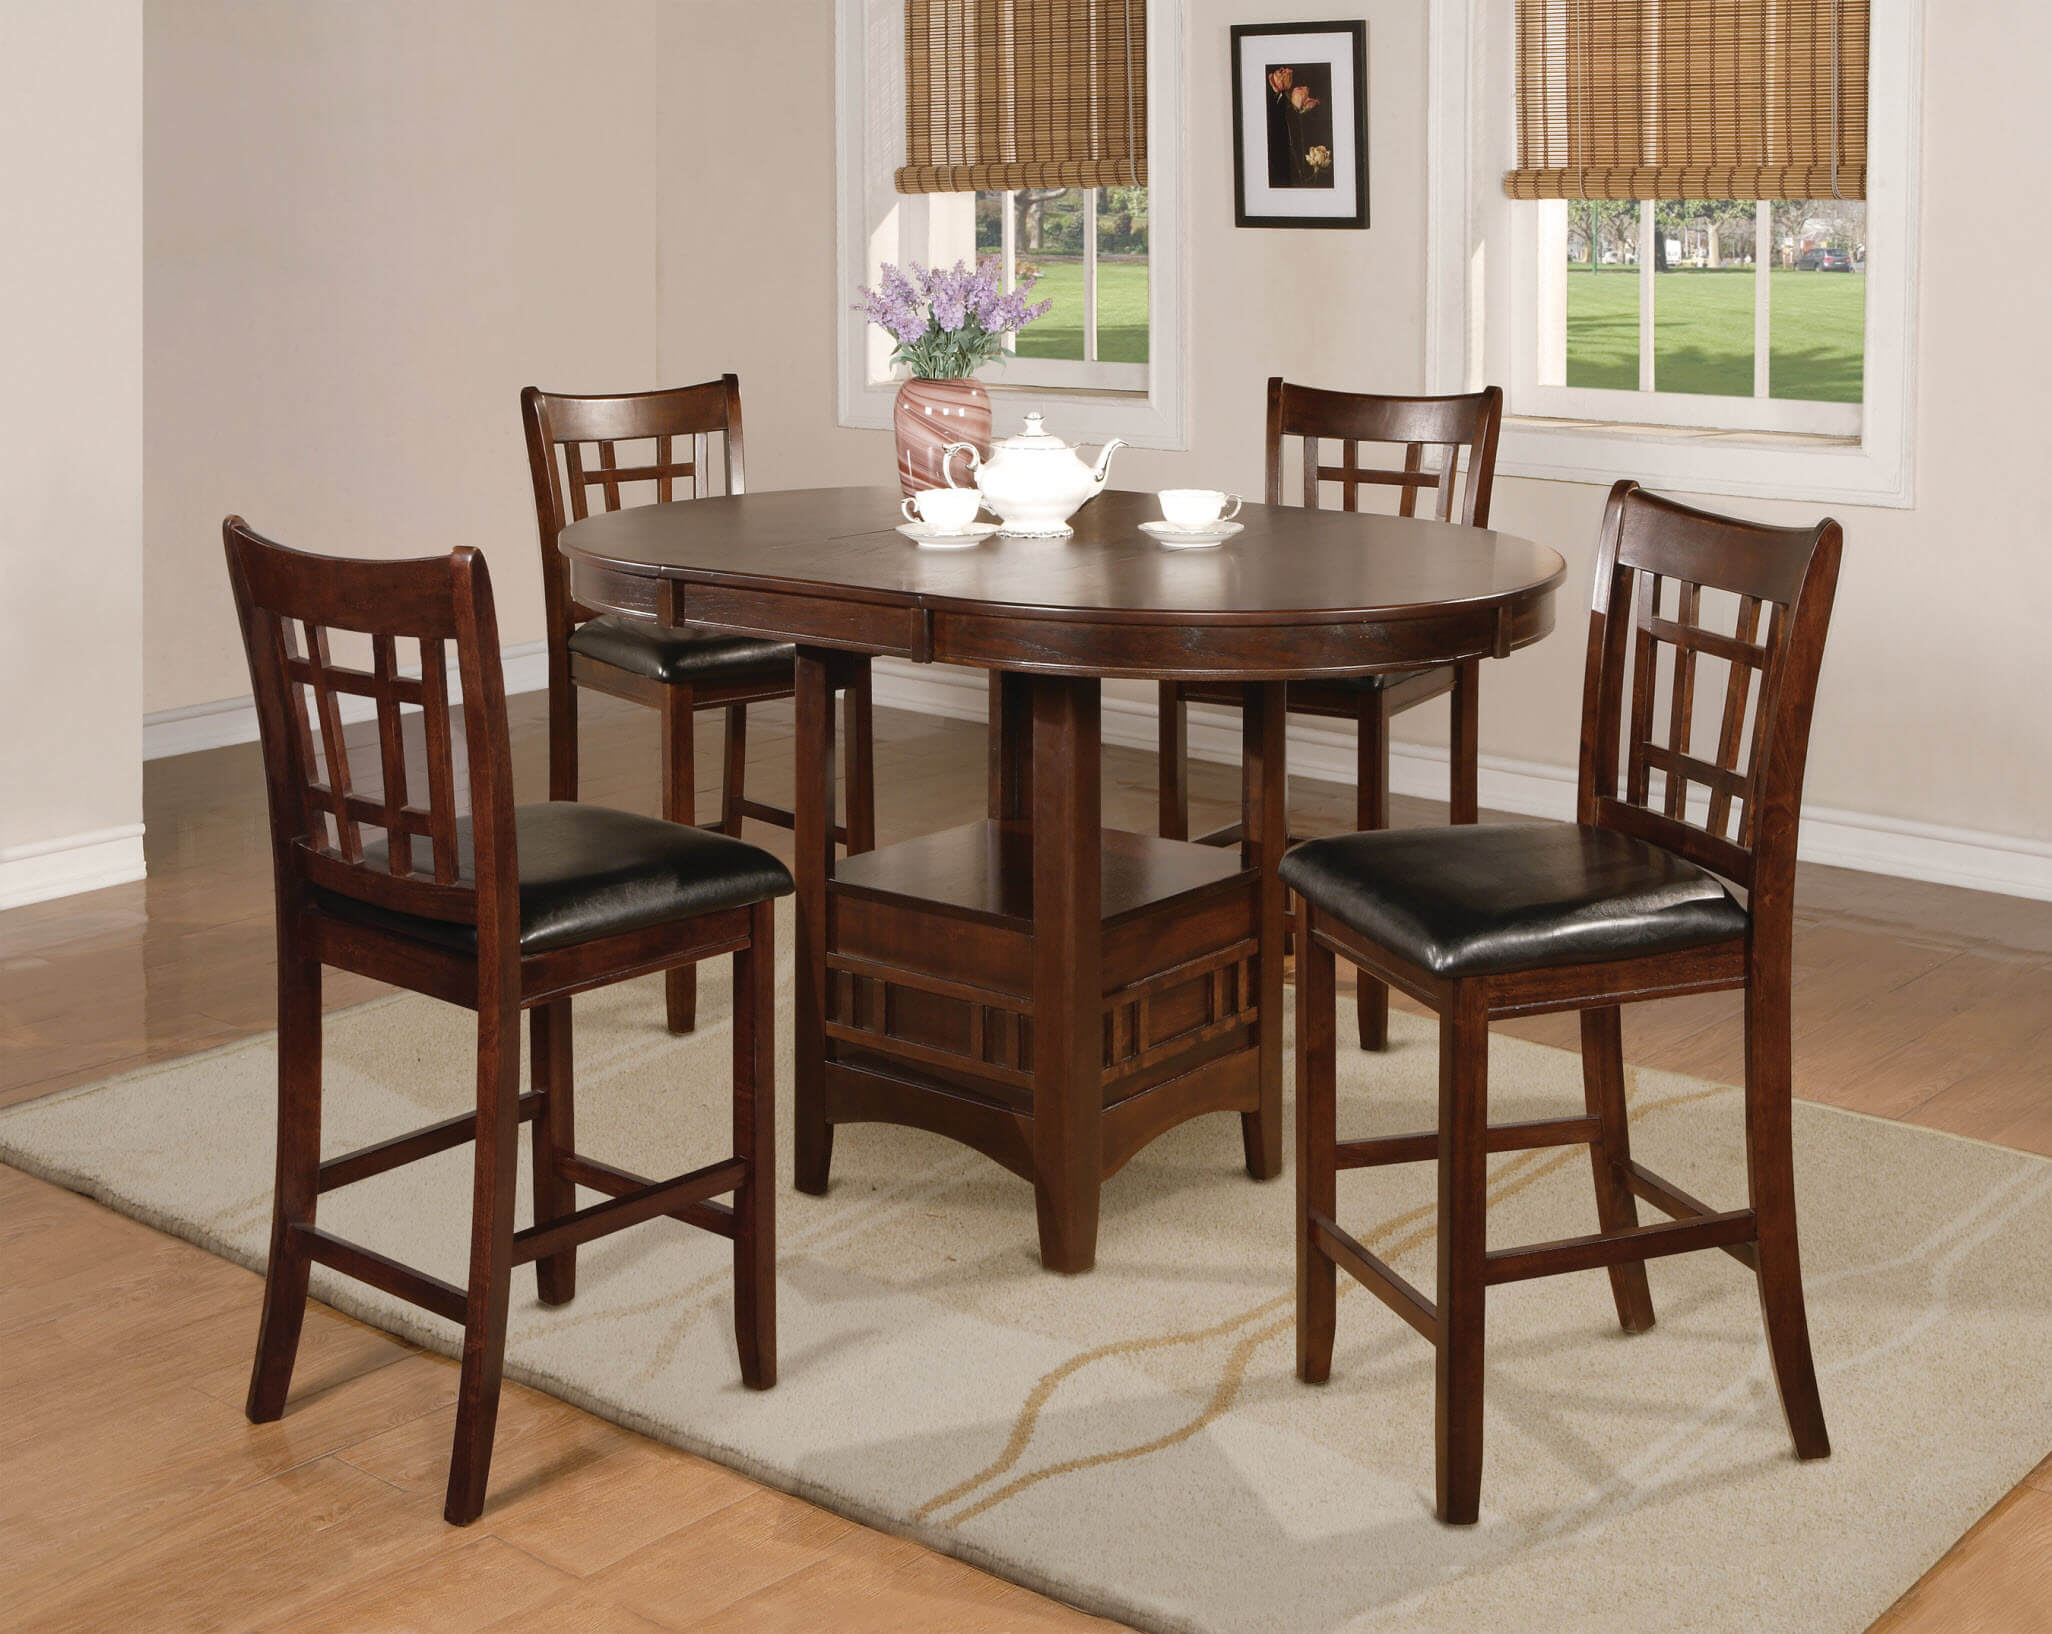 https://furnitureurban.com/wp-content/uploads/2014/06/2795-Crown-Mark-Hartwell-Counter-Height-Dining-Room-Set.jpg